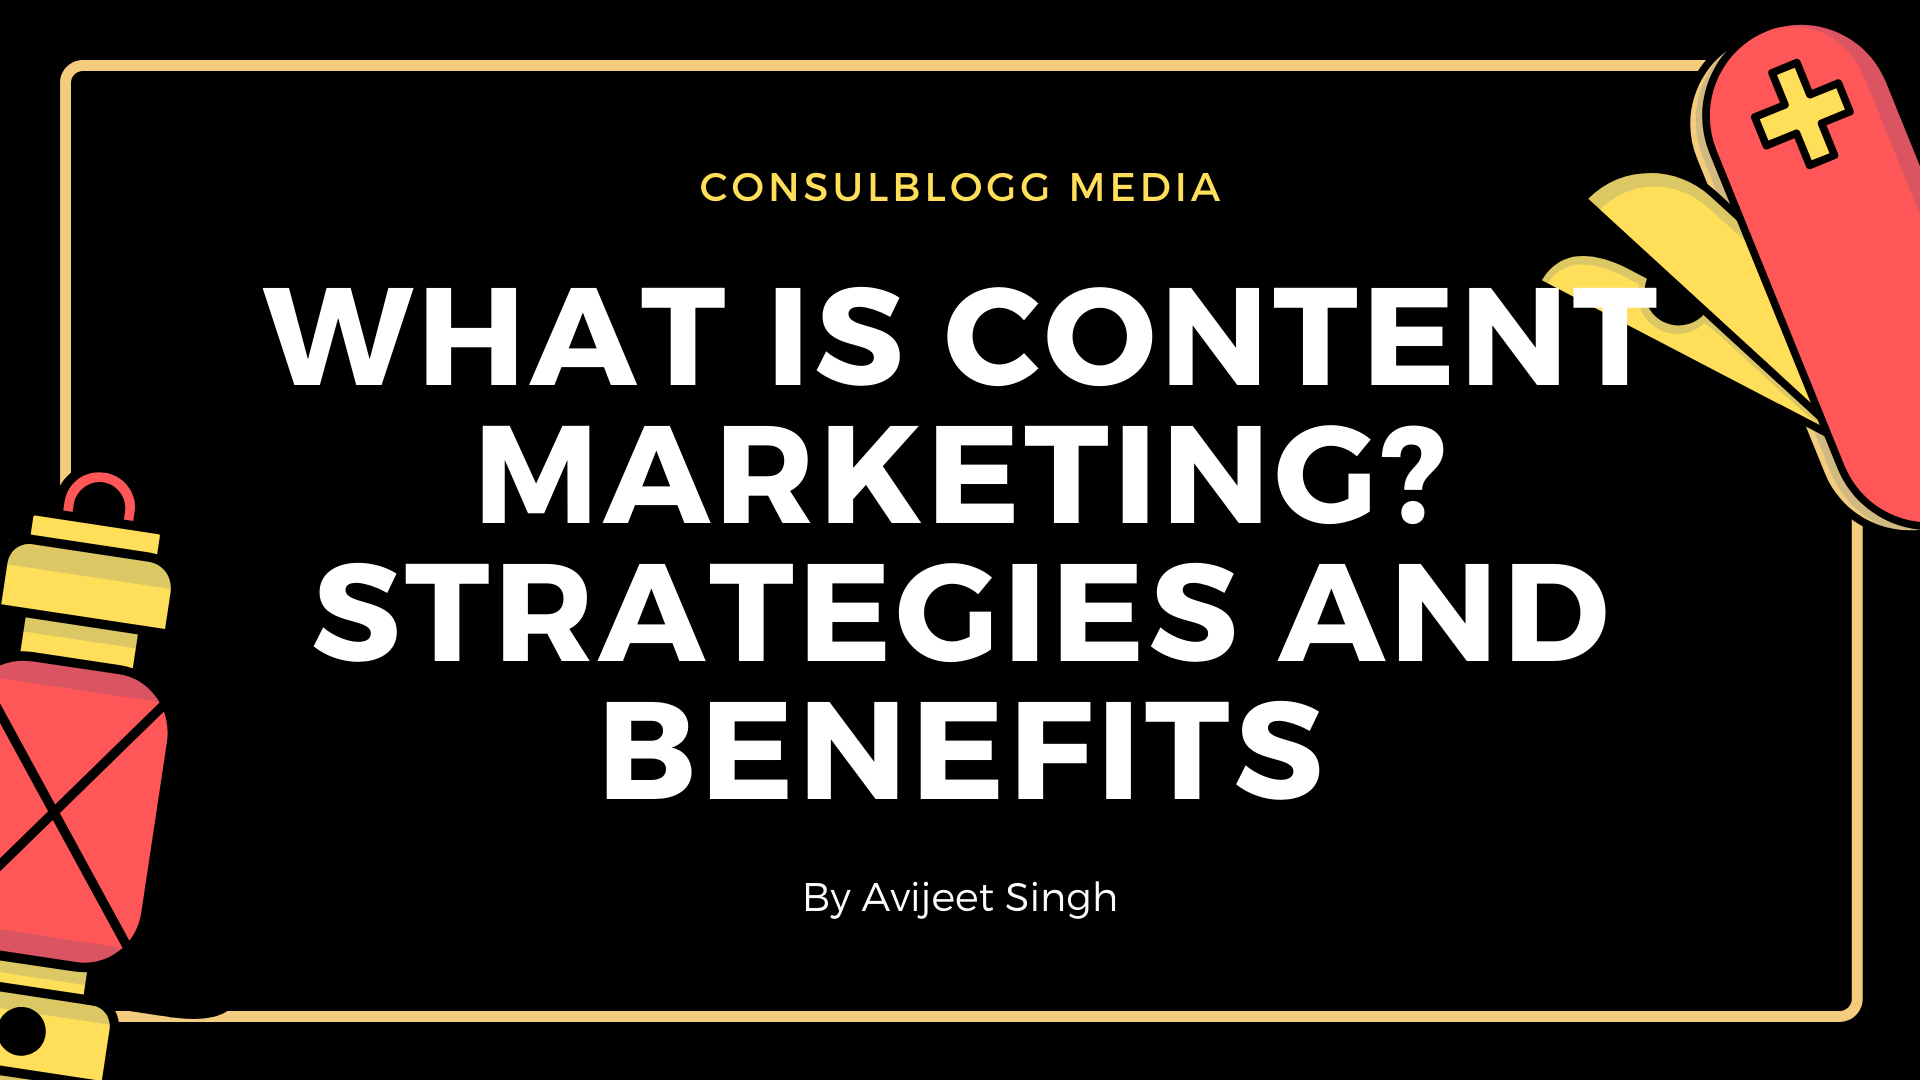 What is content marketing strategies and benefits